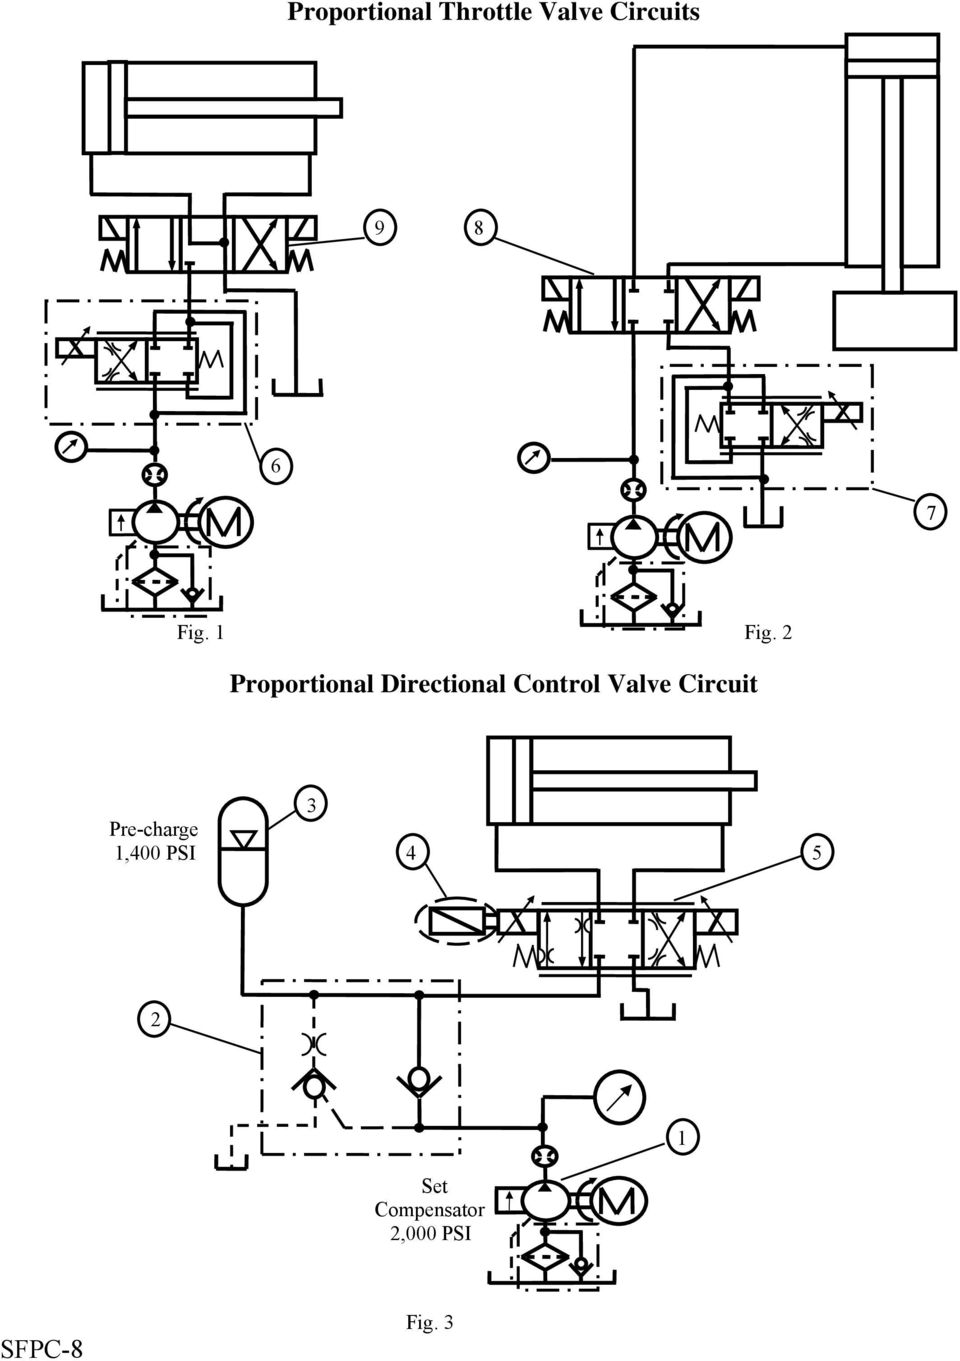 2 Proportional Directional Control Valve